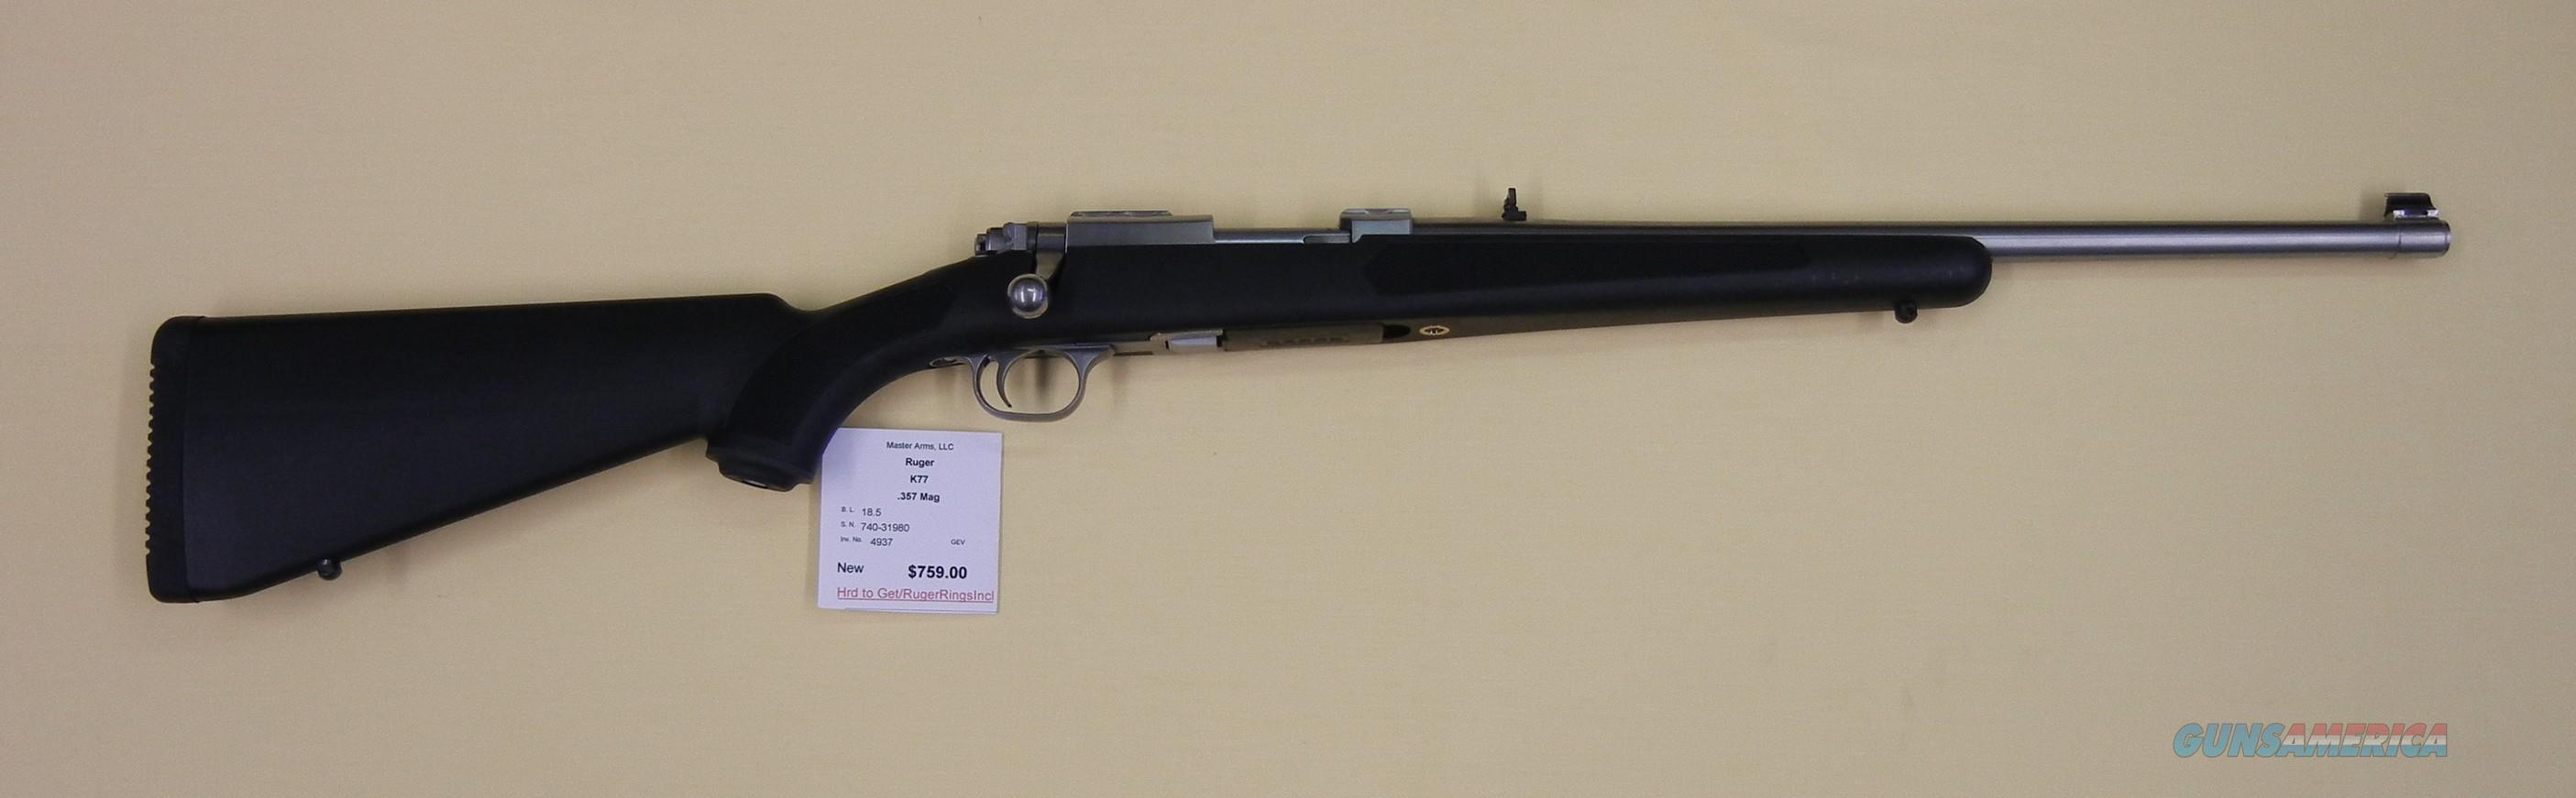 RUGER M77/357  Guns > Rifles > Ruger Rifles > Model 77